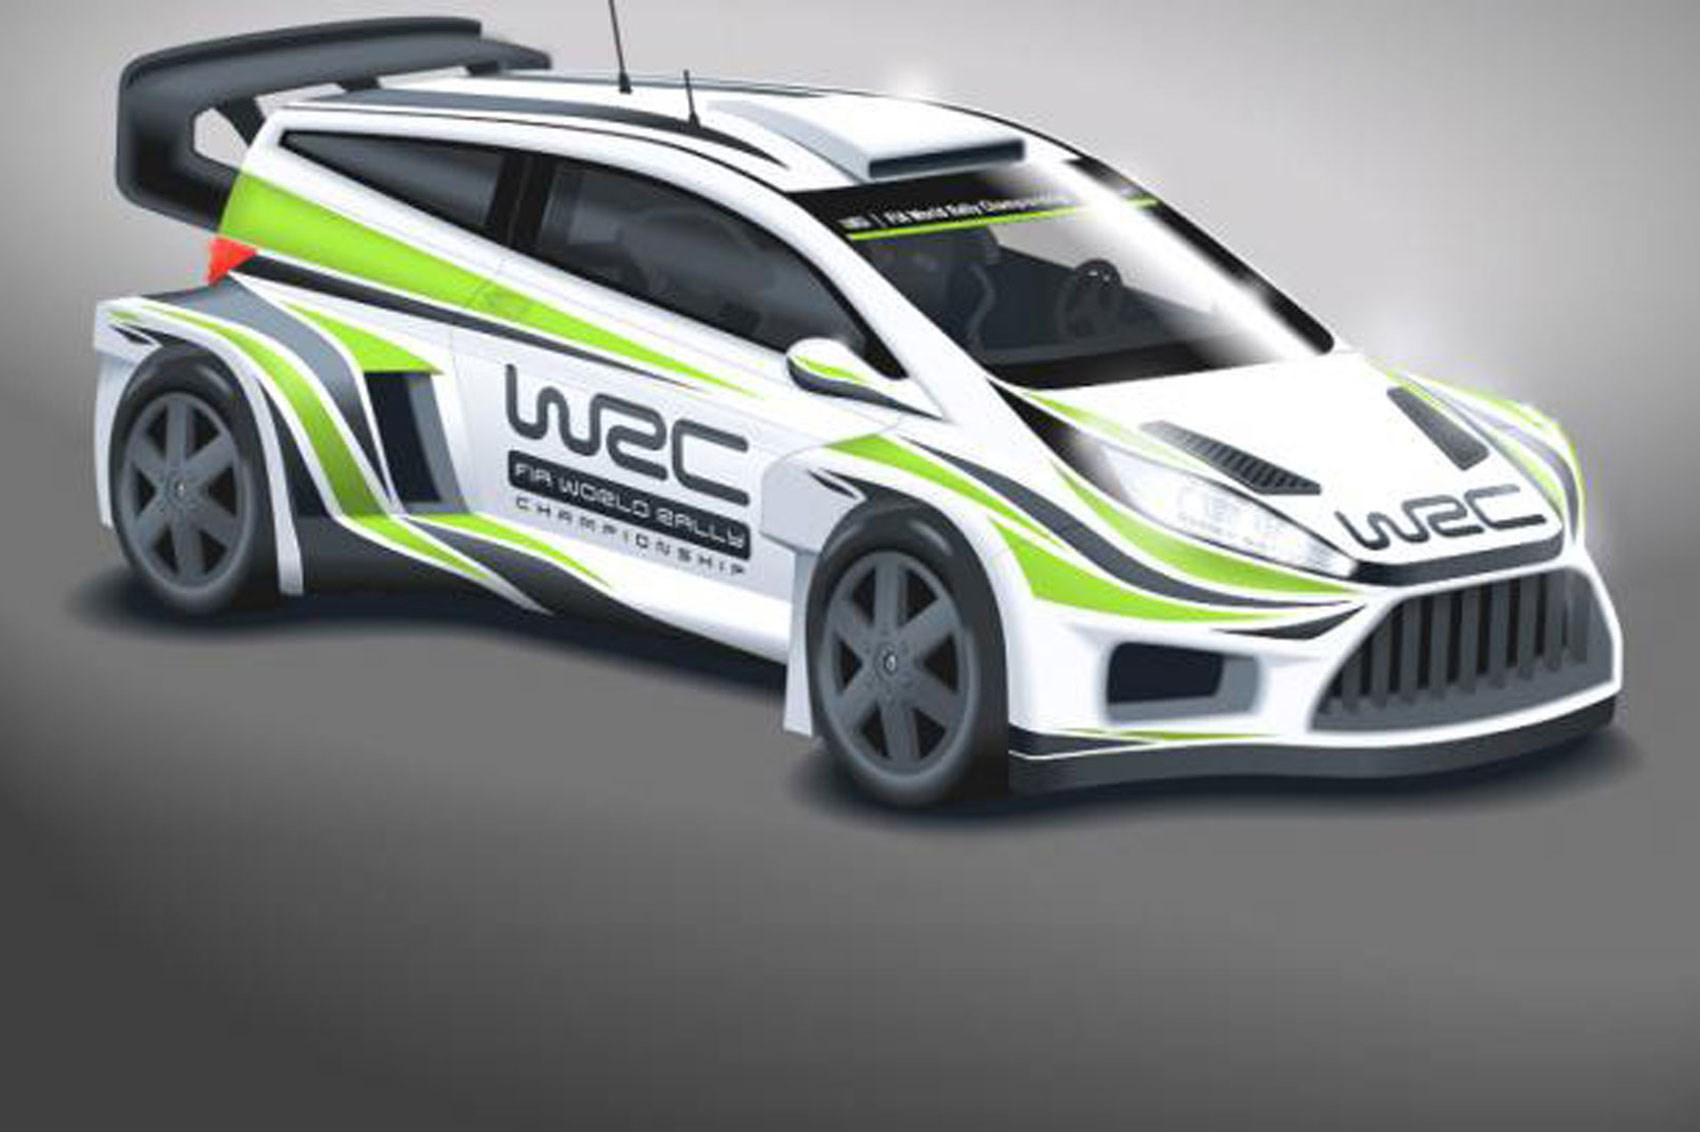 Ultrablogus  Personable Wild New Look For Wrc Cars In  By Car Magazine With Great Wrc Cars Will Get Wider Bodies Bigger Wings And More Power For  With Attractive Spray Paint Interior Walls Also Mk Golf Custom Interior In Addition B Q Interior Doors And Diy Interior Brick Wall As Well As Freelance Interior Design Rates Additionally Mk Interior From Carmagazinecouk With Ultrablogus  Great Wild New Look For Wrc Cars In  By Car Magazine With Attractive Wrc Cars Will Get Wider Bodies Bigger Wings And More Power For  And Personable Spray Paint Interior Walls Also Mk Golf Custom Interior In Addition B Q Interior Doors From Carmagazinecouk